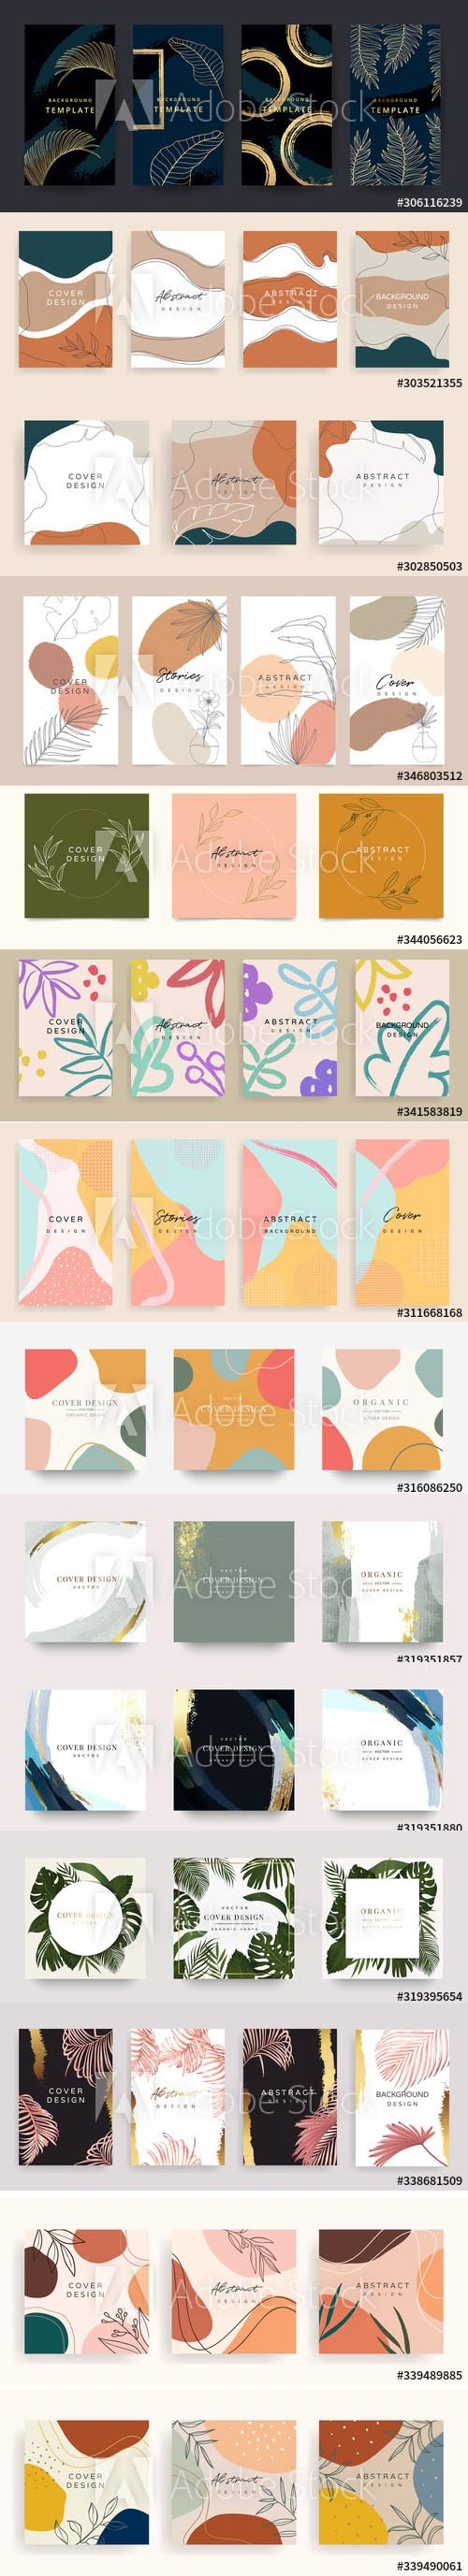 Hand-Draw Abstract Backgrounds for Invitation Template Vol 4